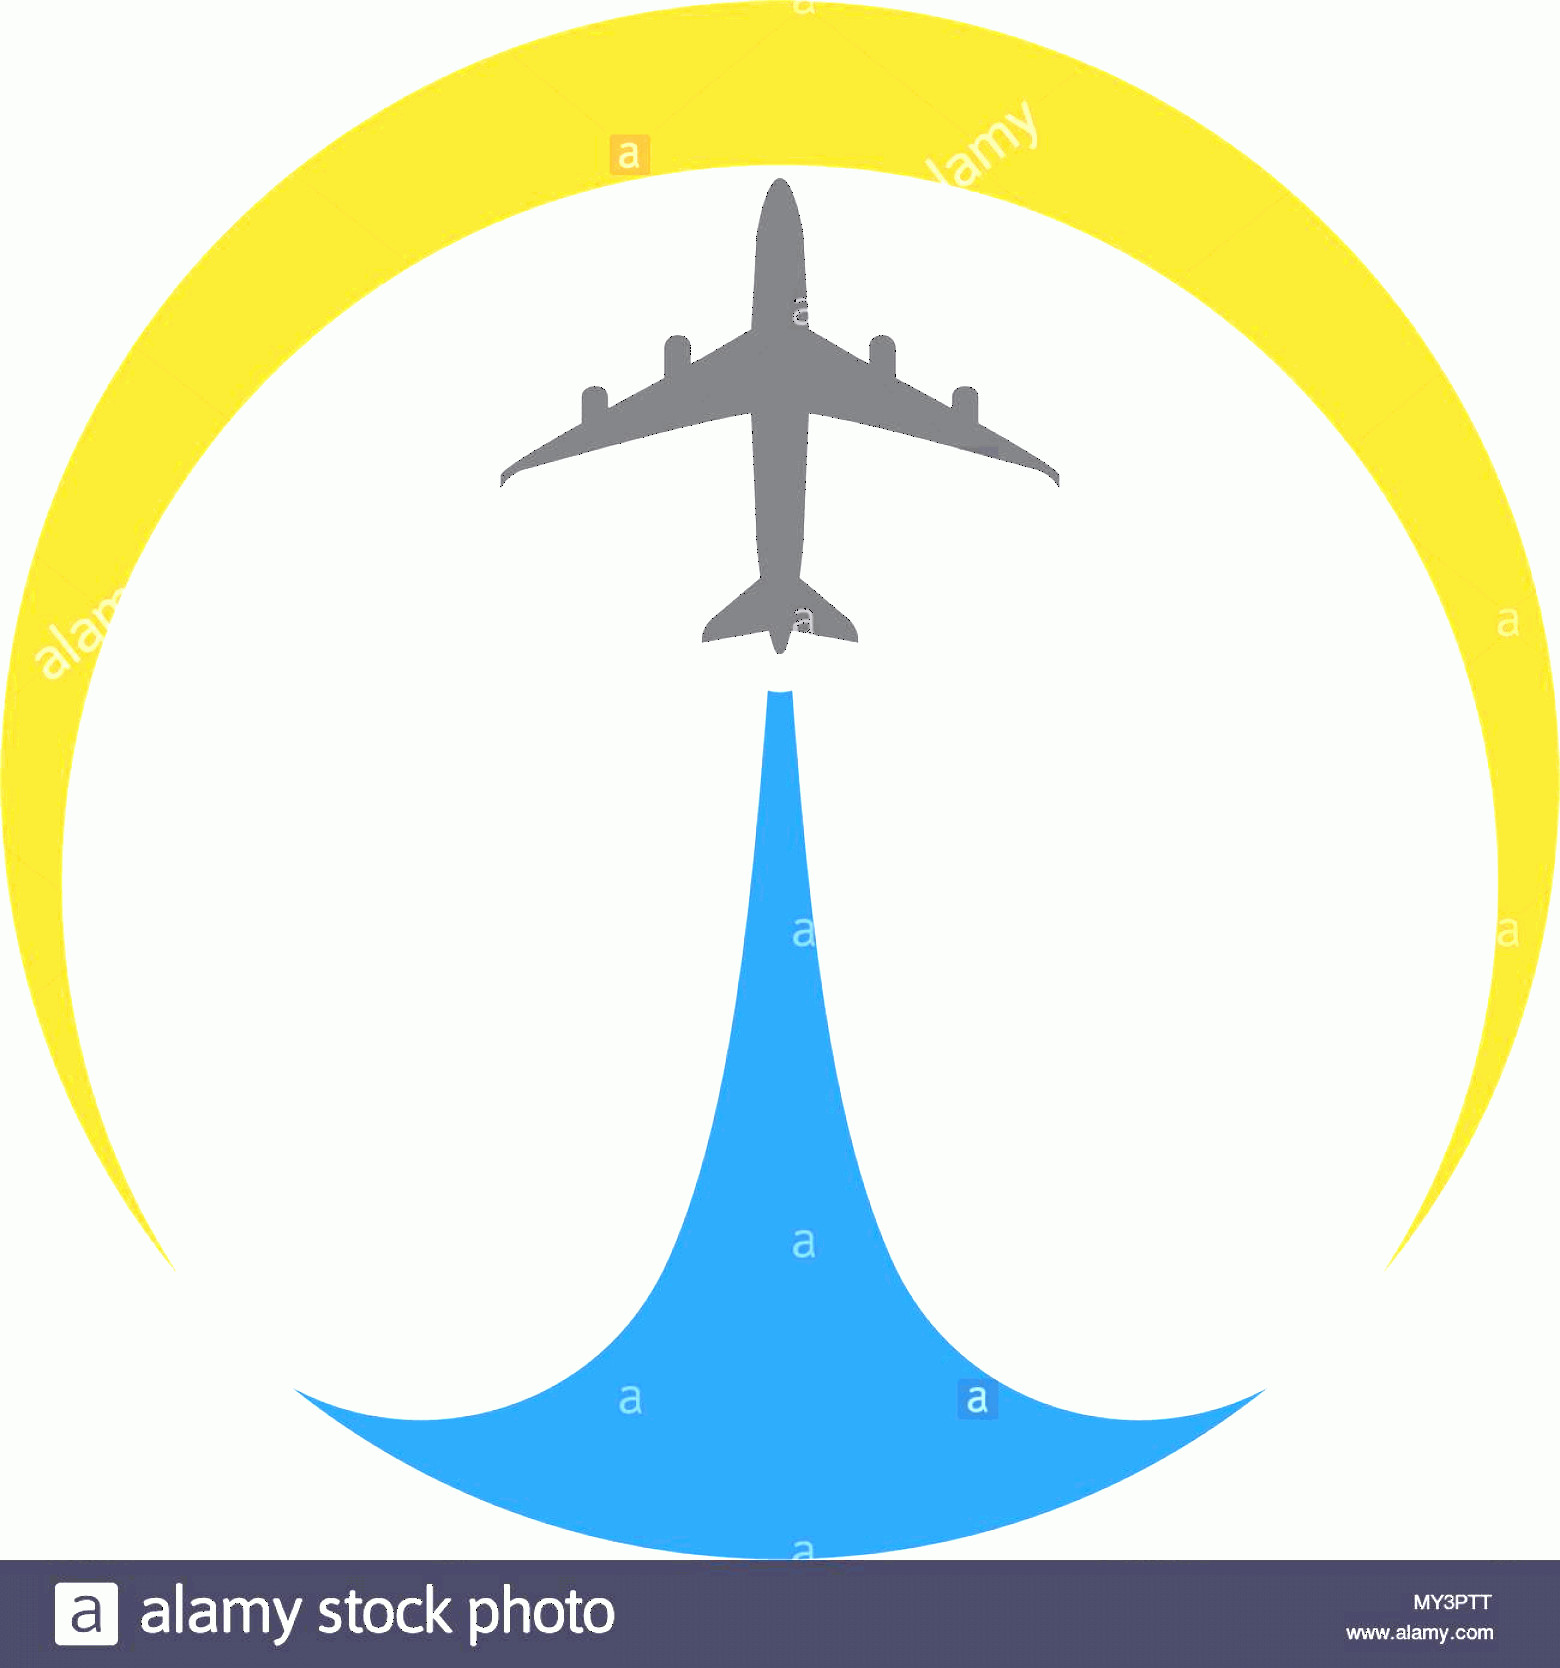 Aviation Vector Designs: Airplane Icon Vector Illustration Design Logo Template Image